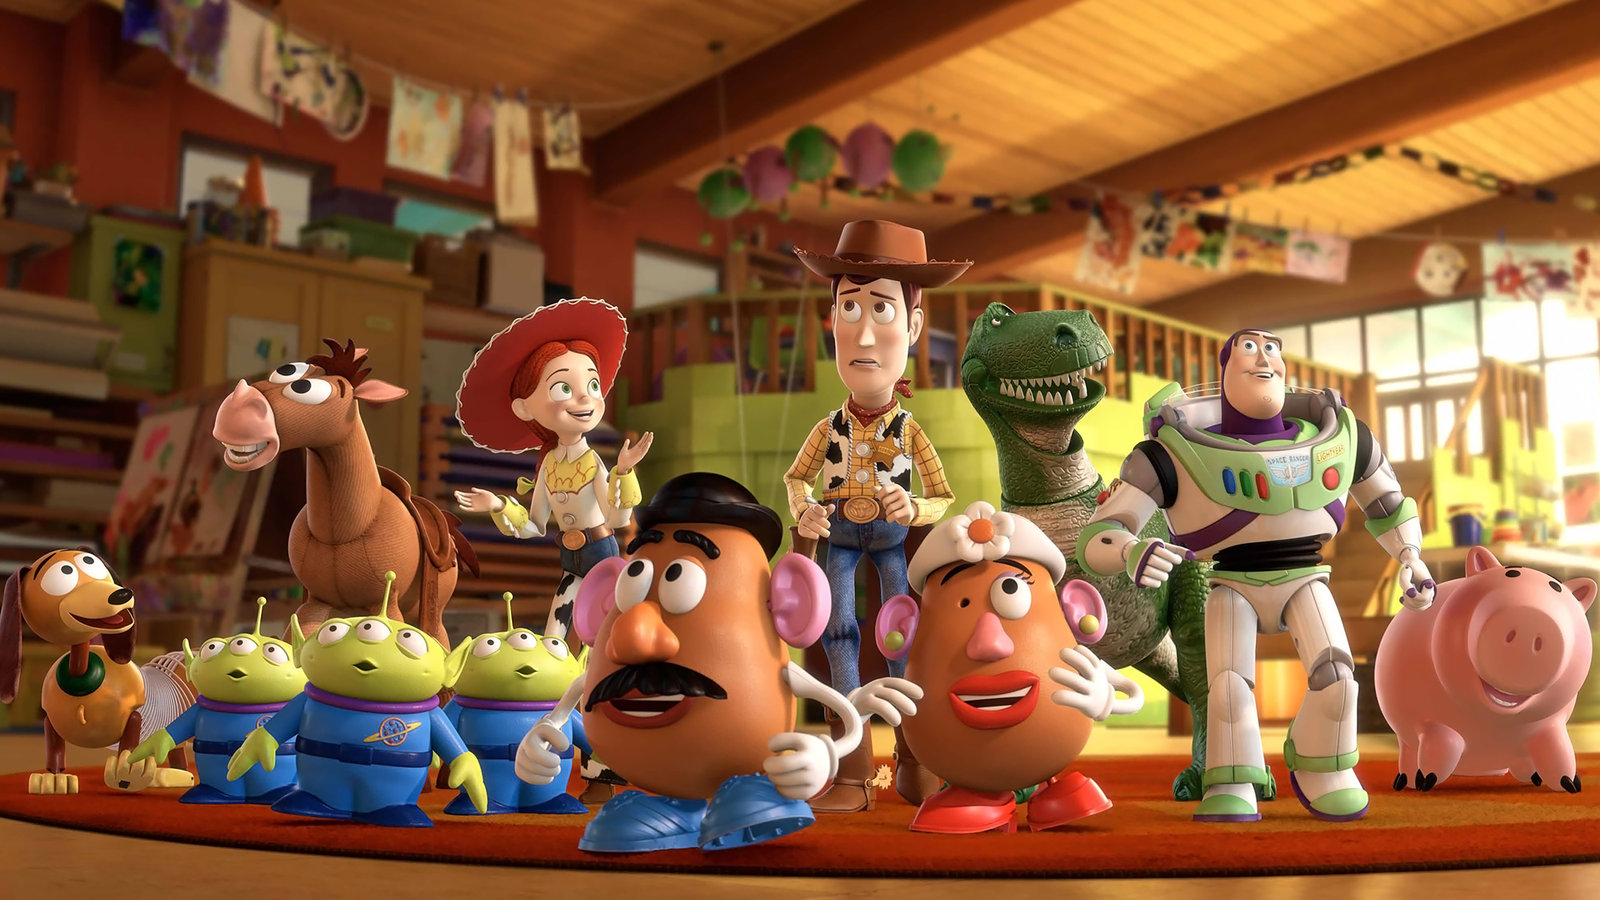 Image result for toy story scene